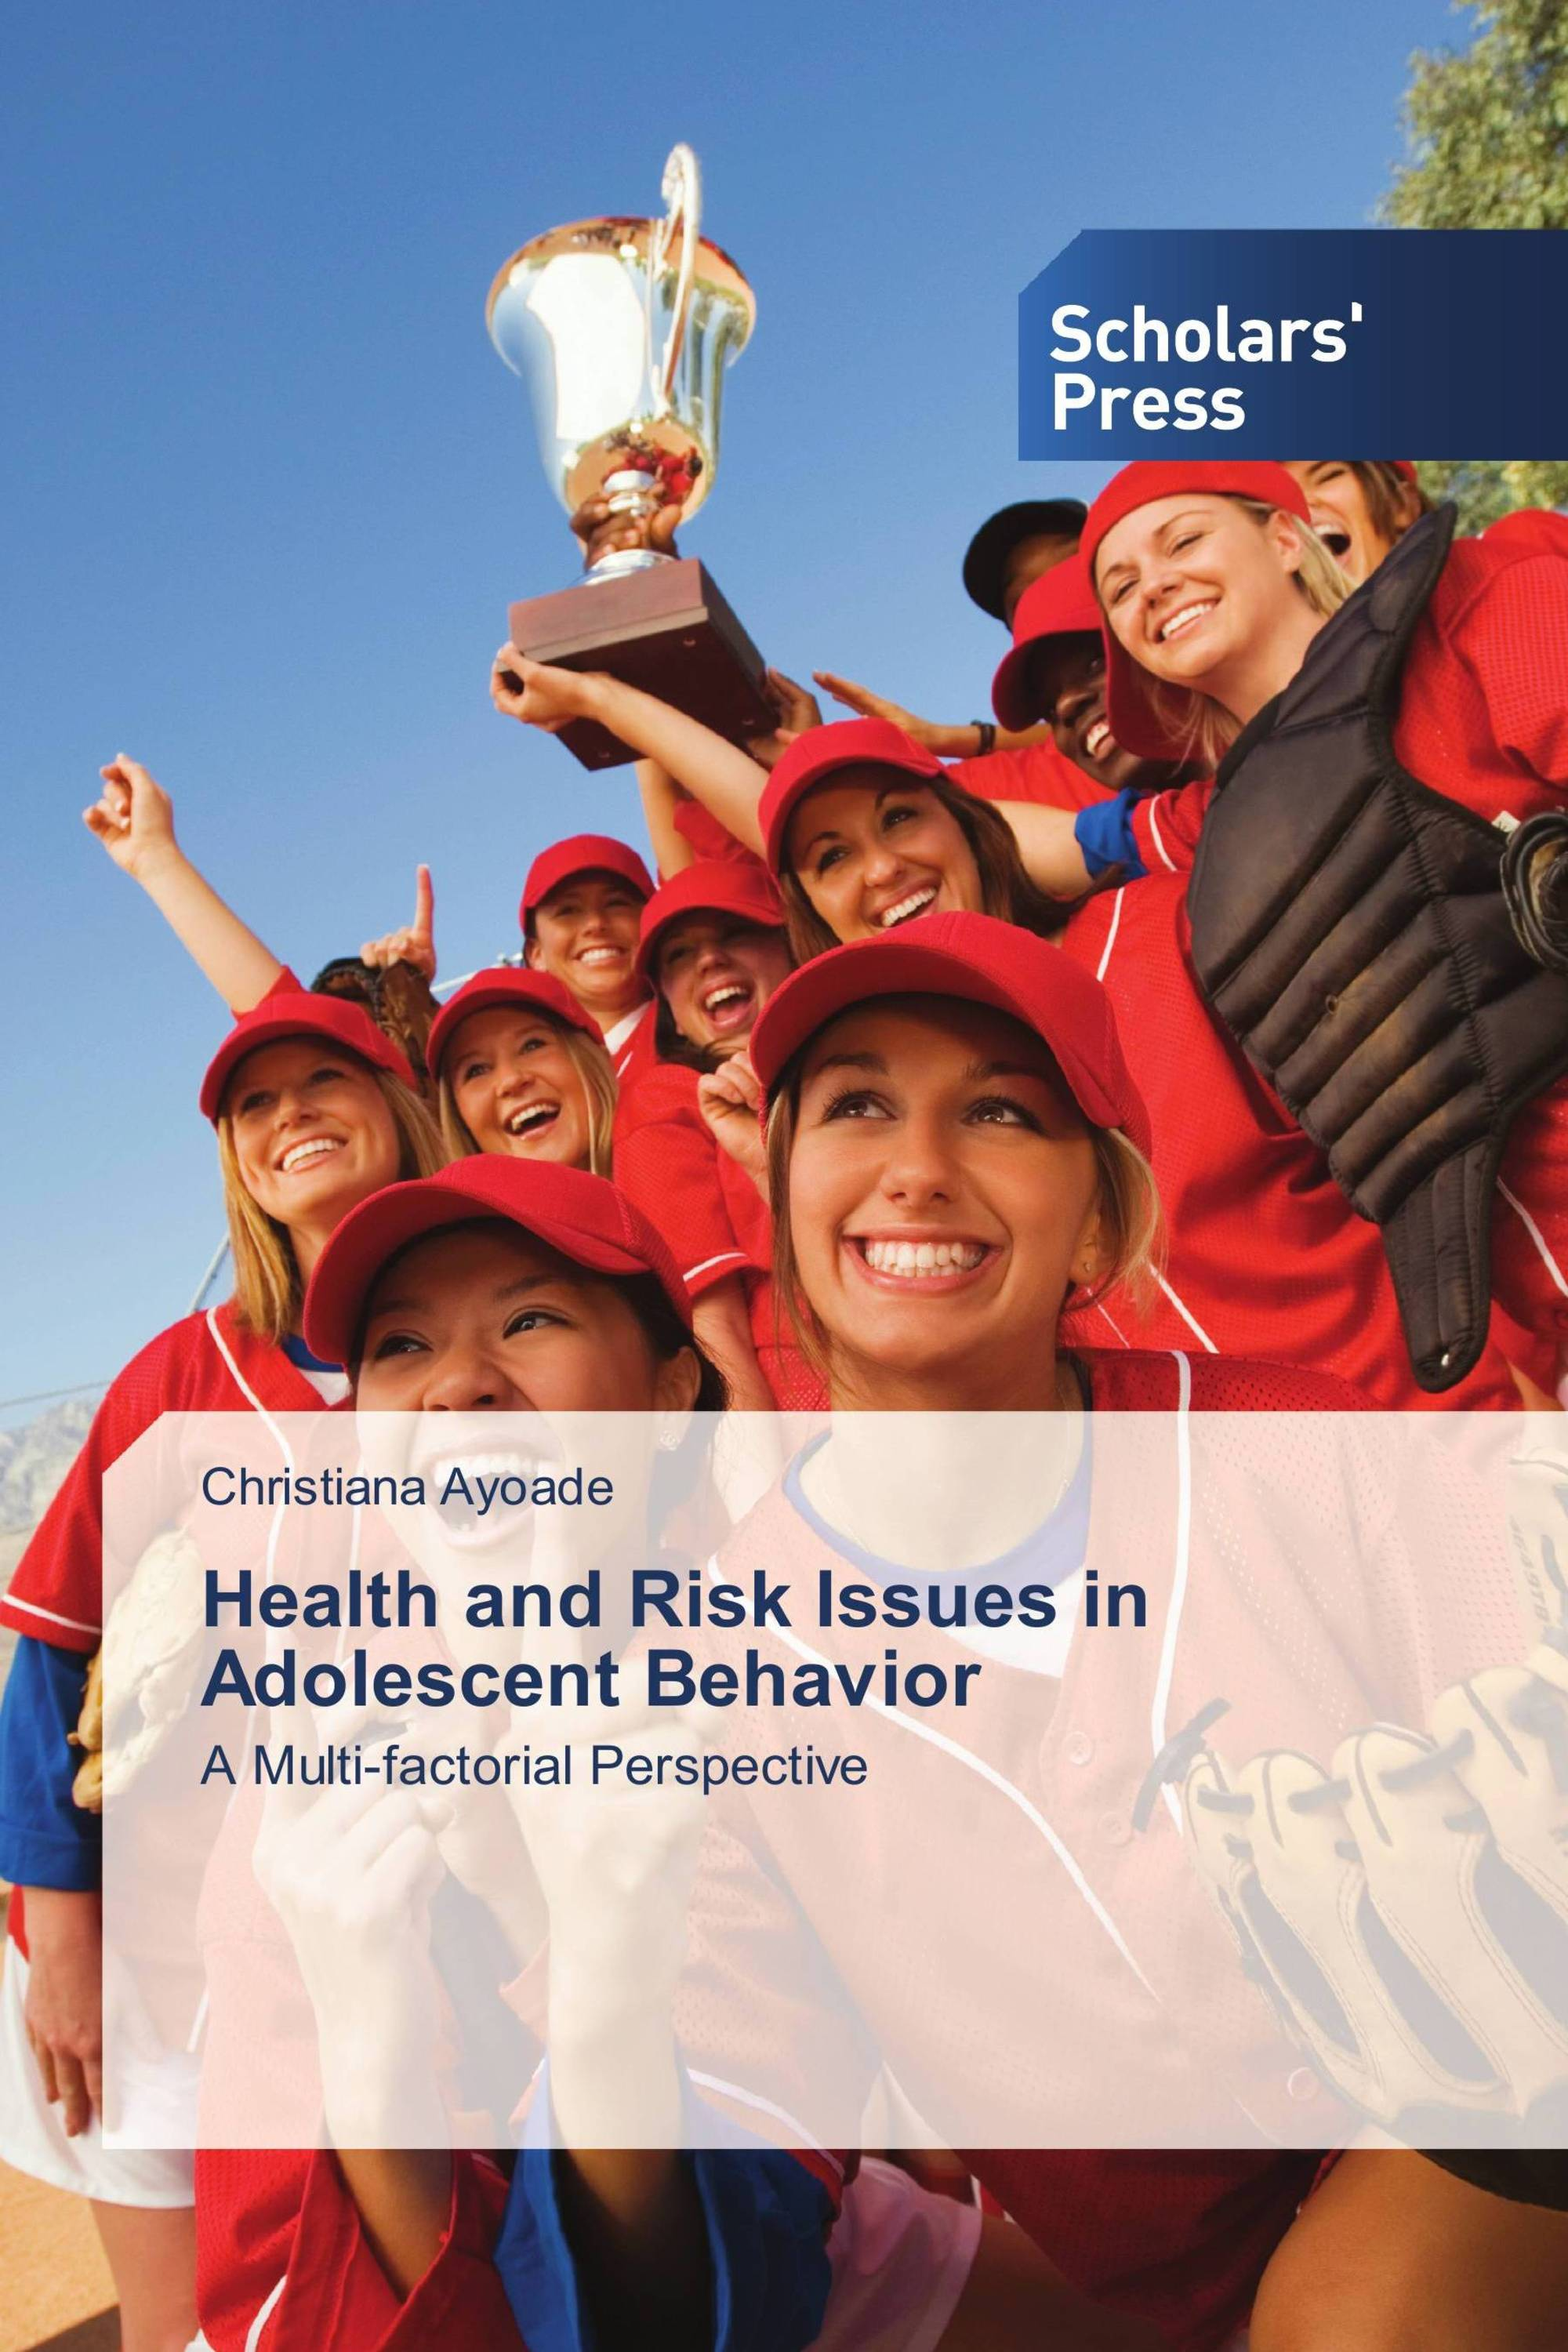 Health and Risk Issues in Adolescent Behavior